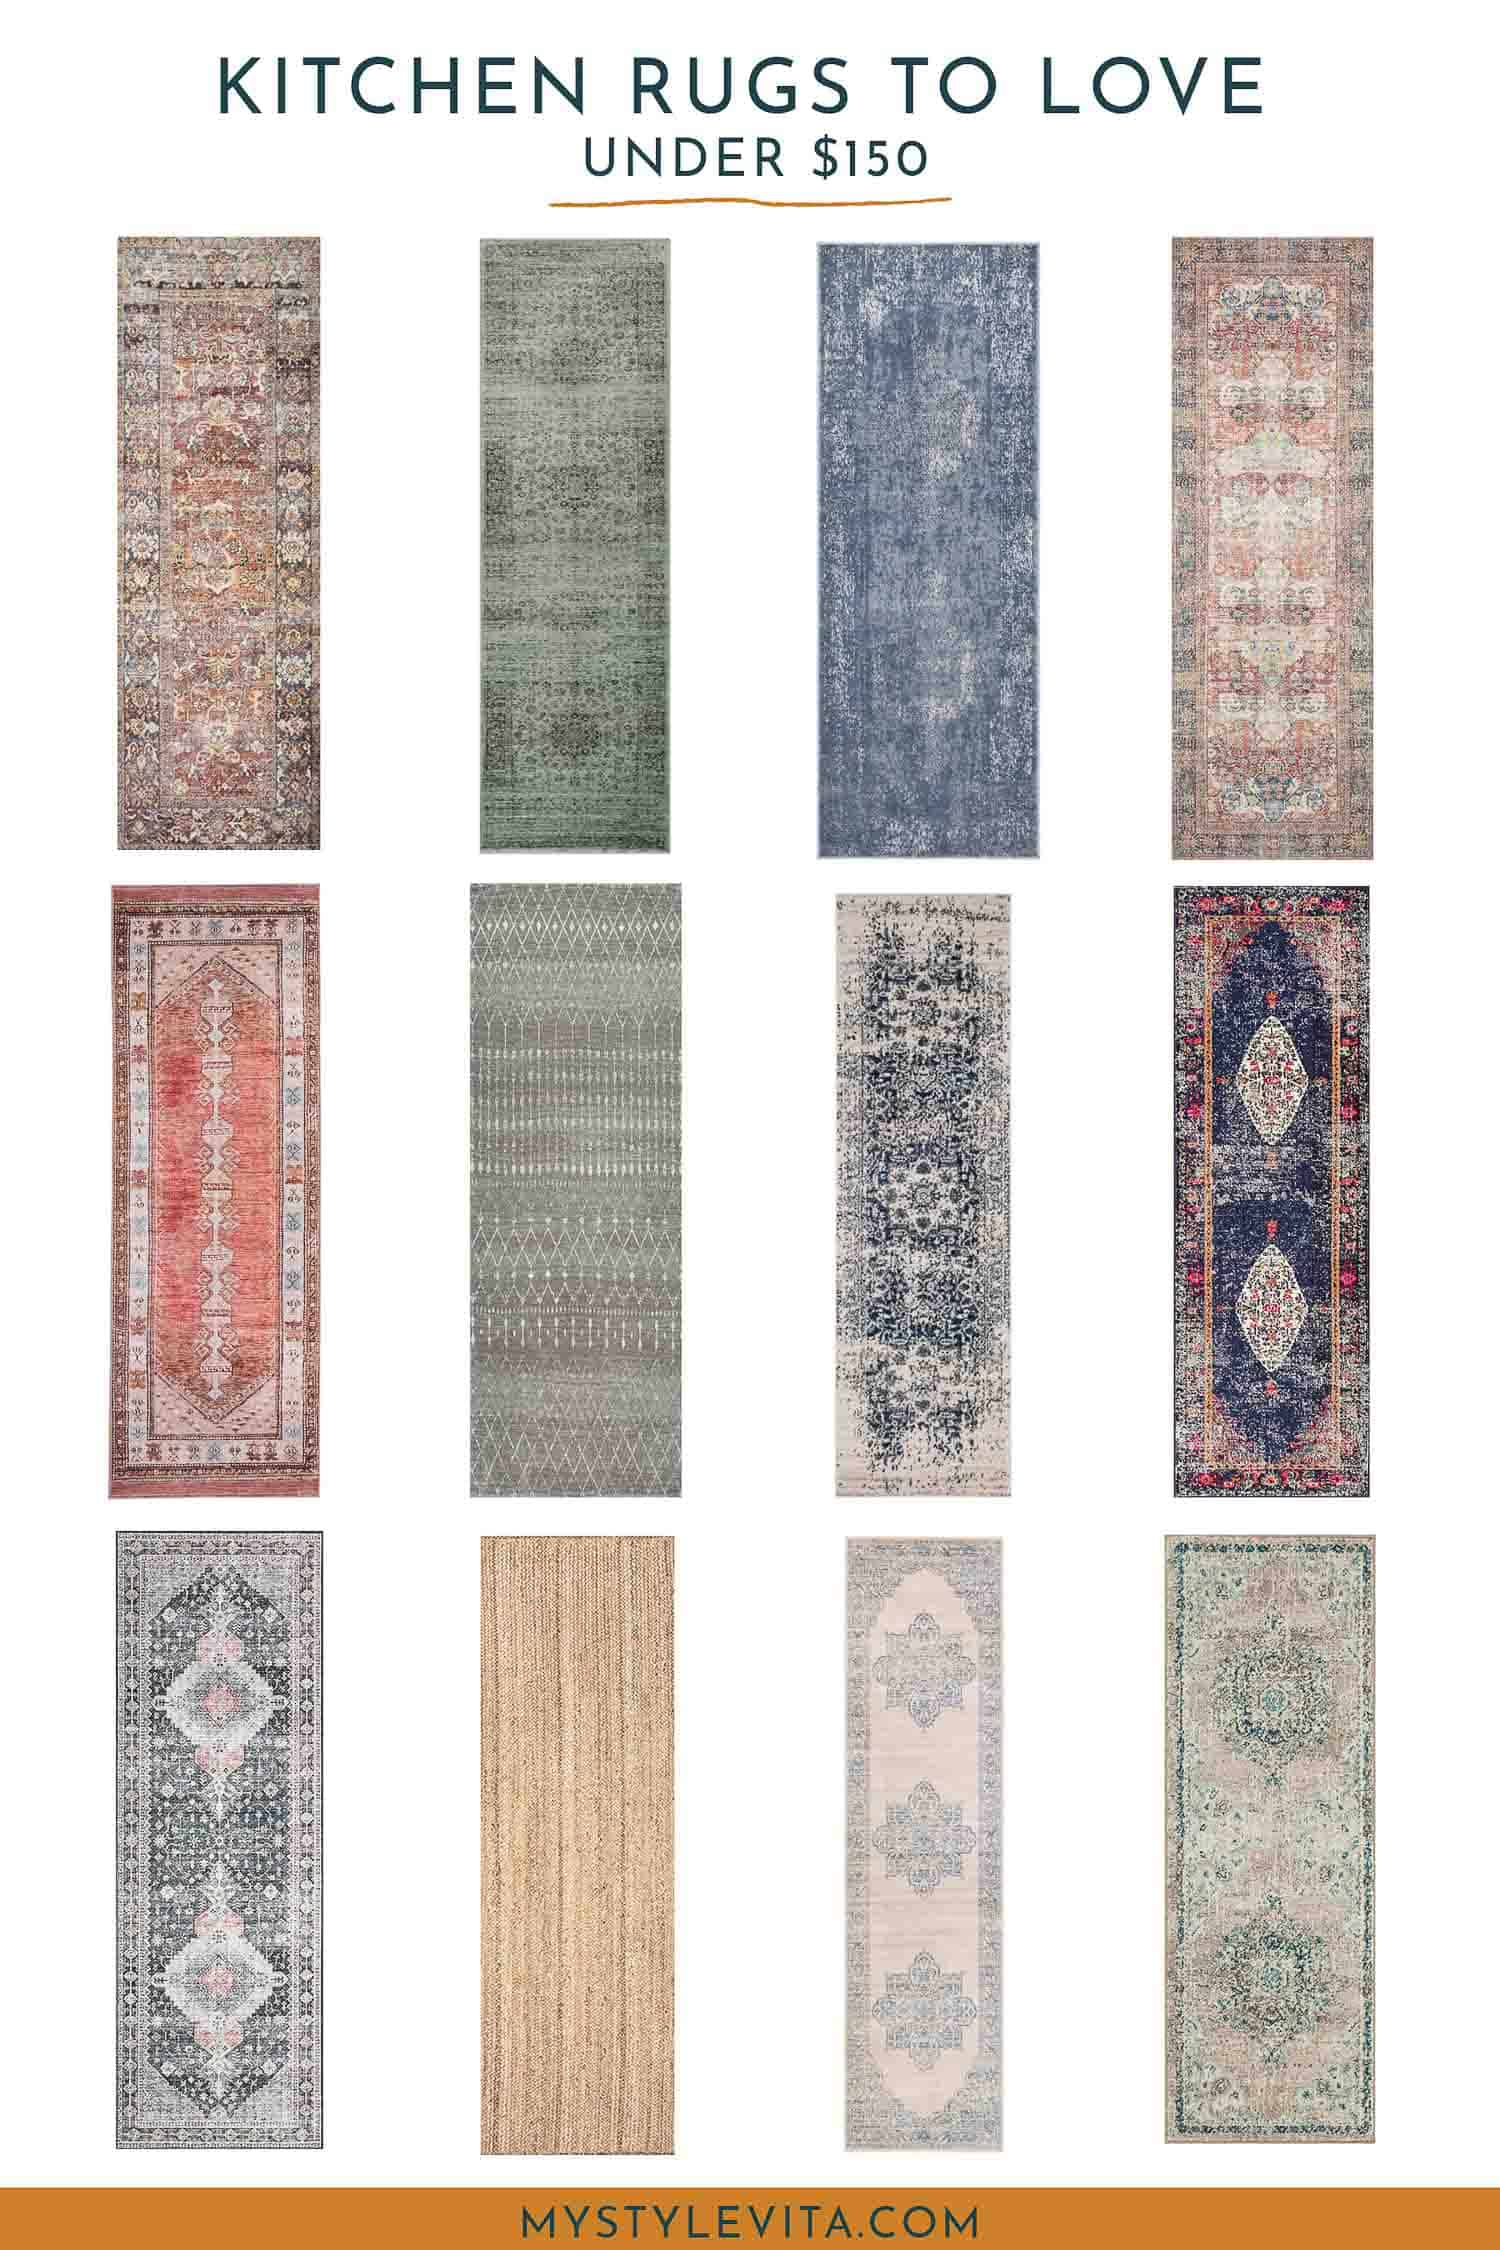 Kitchen Rugs Under $150